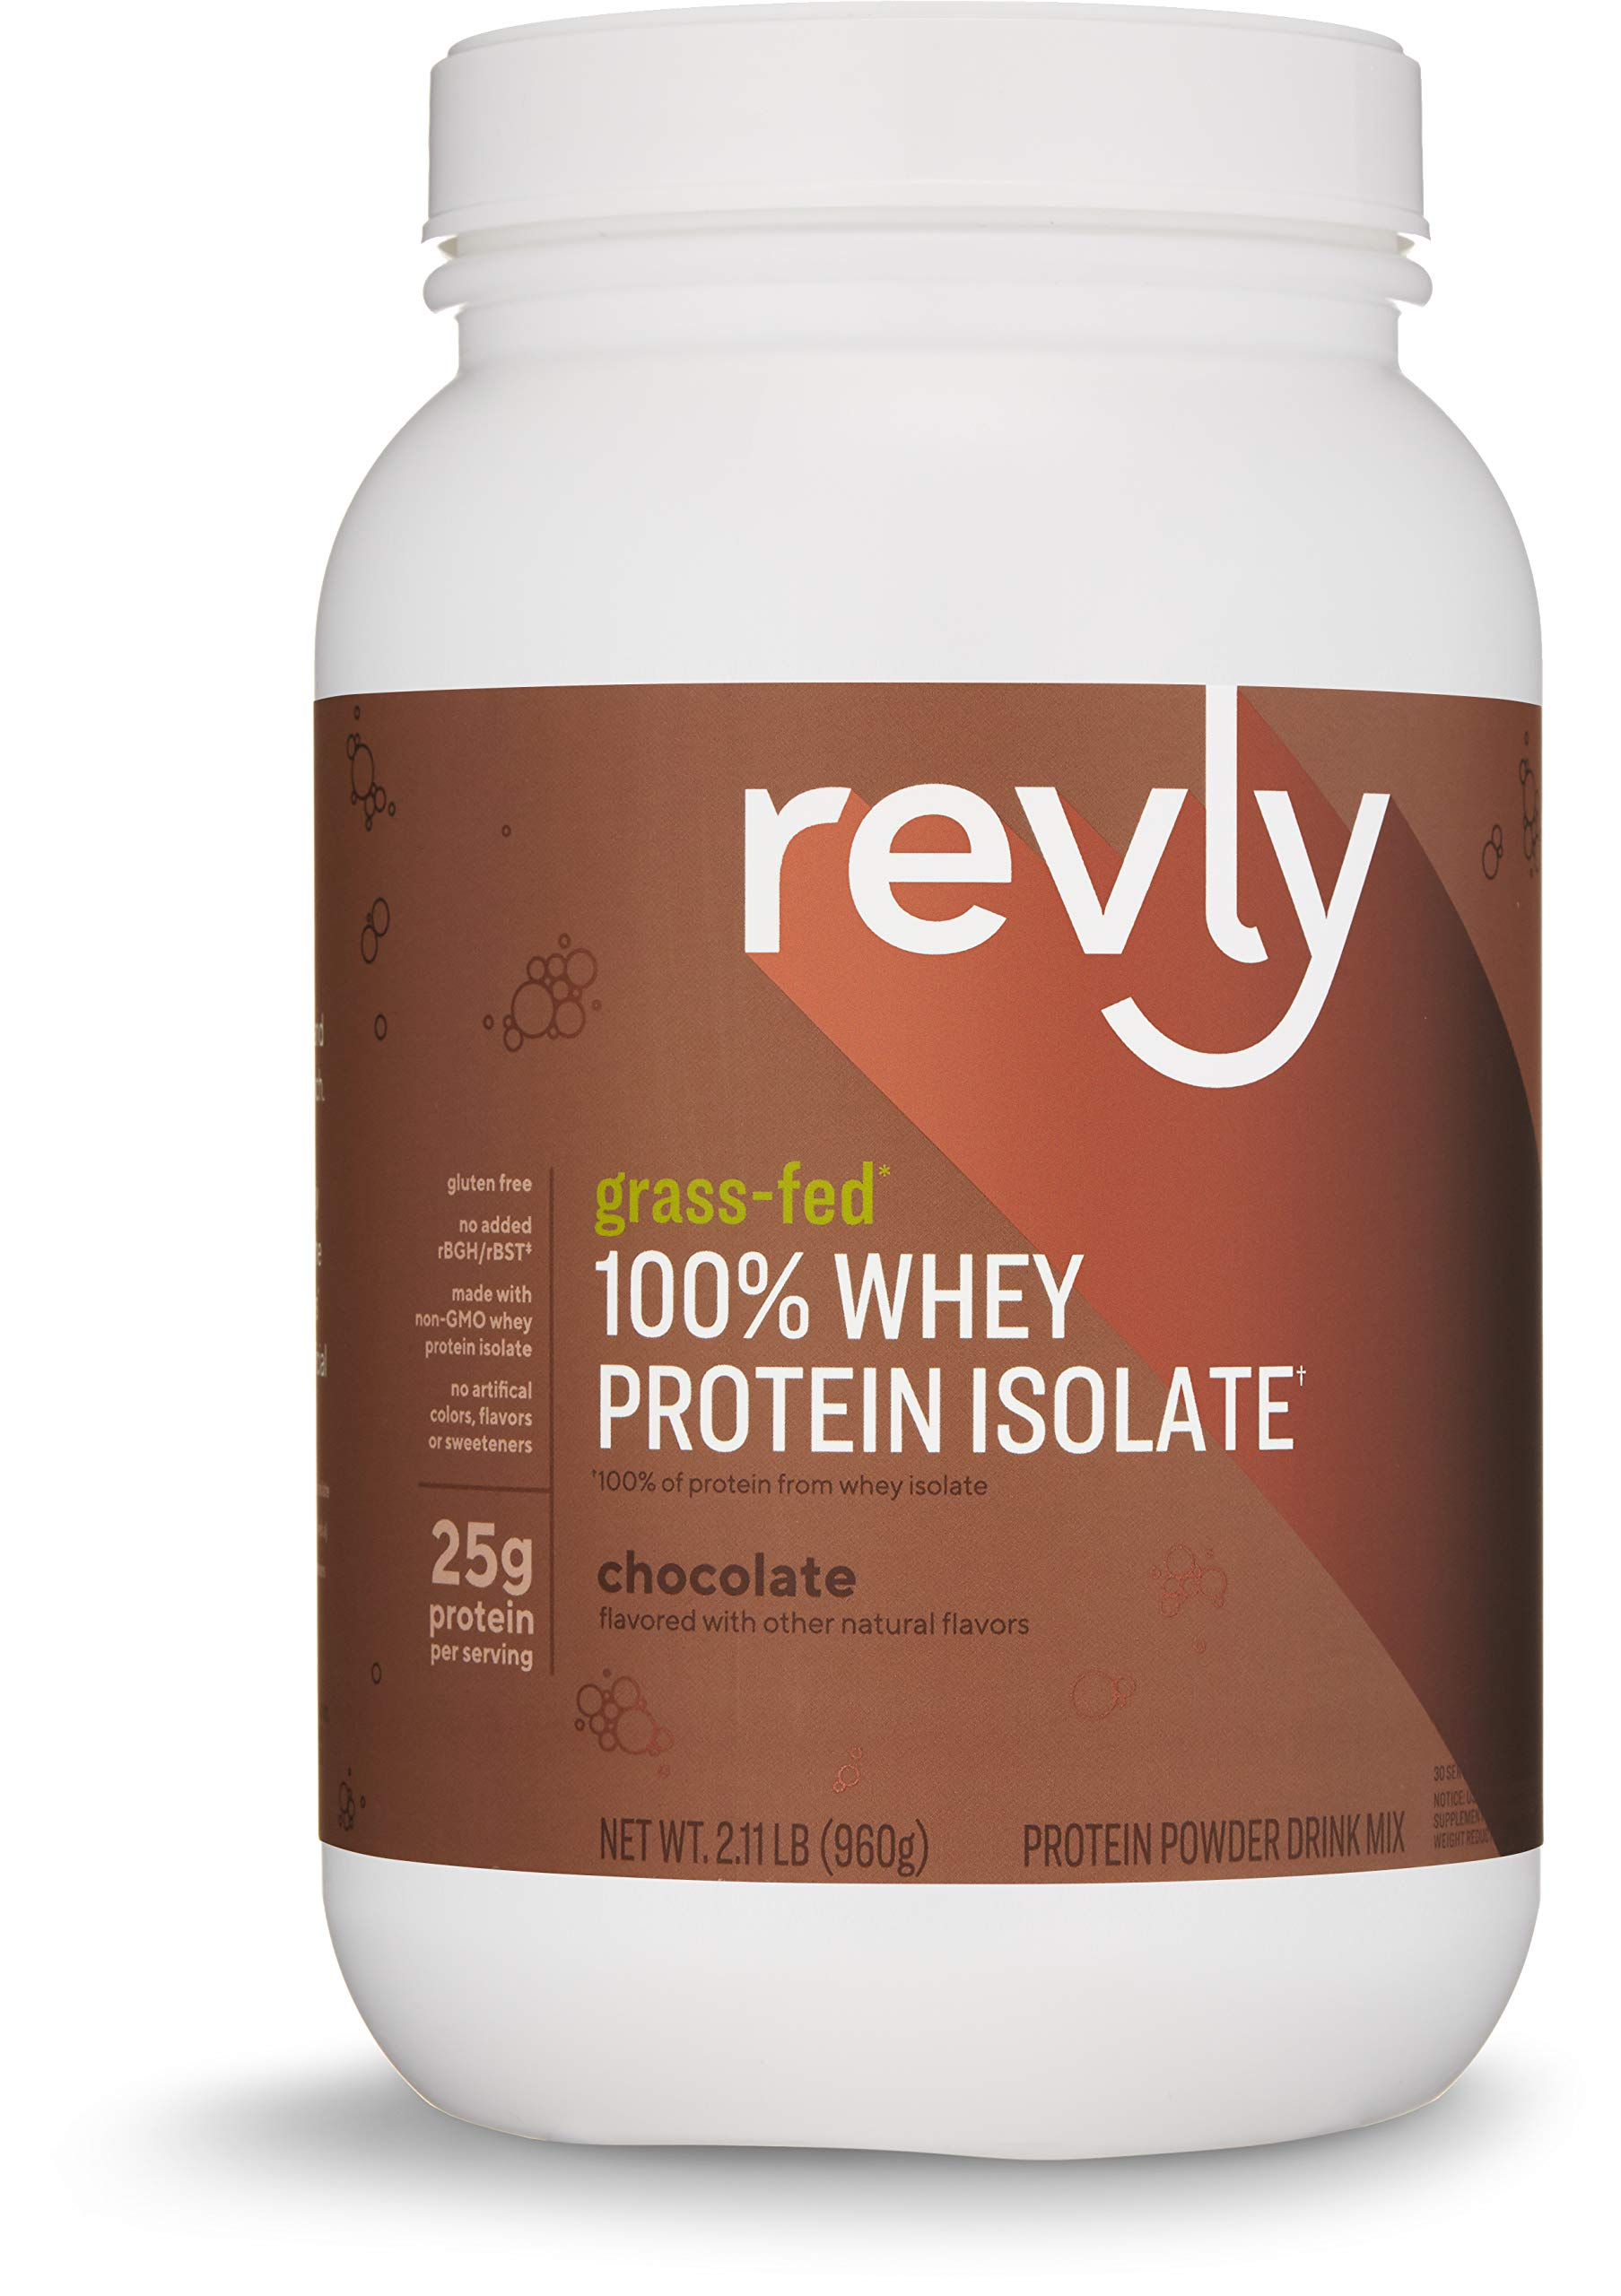 Amazon Brand - Revly 100% Grass-Fed Whey Protein Isolate Powder, Chocolate, 2.11 lbs, 30 Servings, Gluten Free, Non-GMO, No added rbgh/rbst‡ by Revly